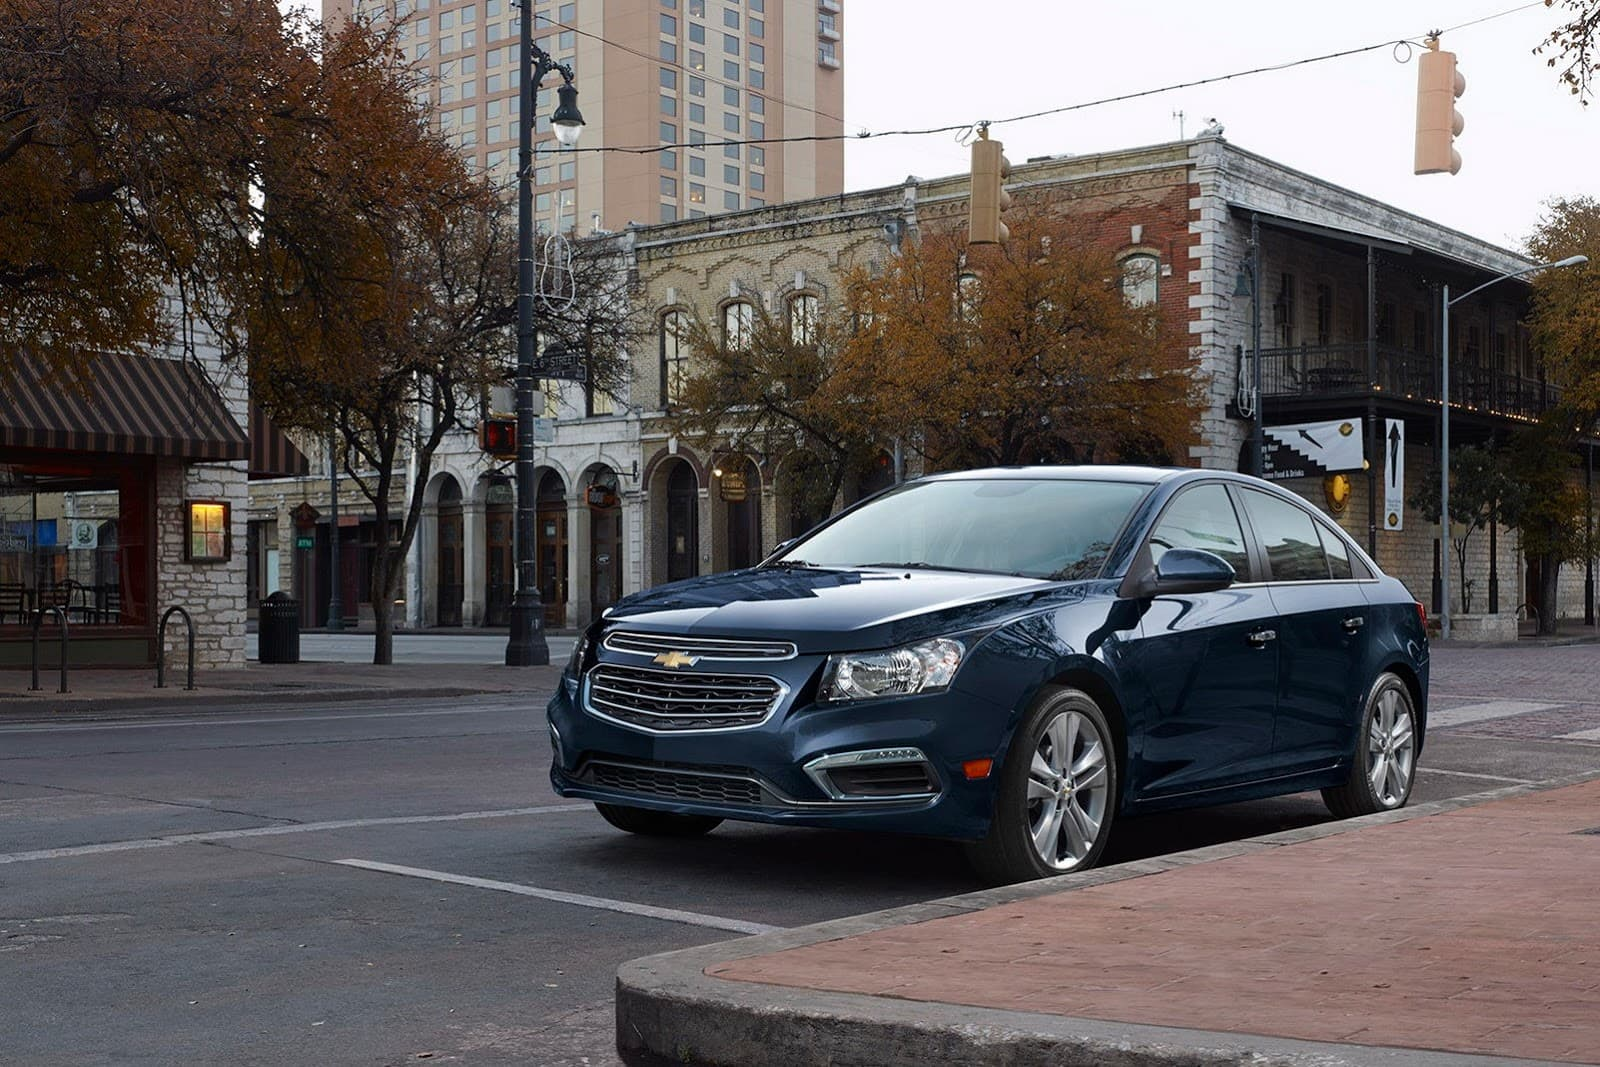 pictures of Chevrolet Cruze 2014 on a street full HD